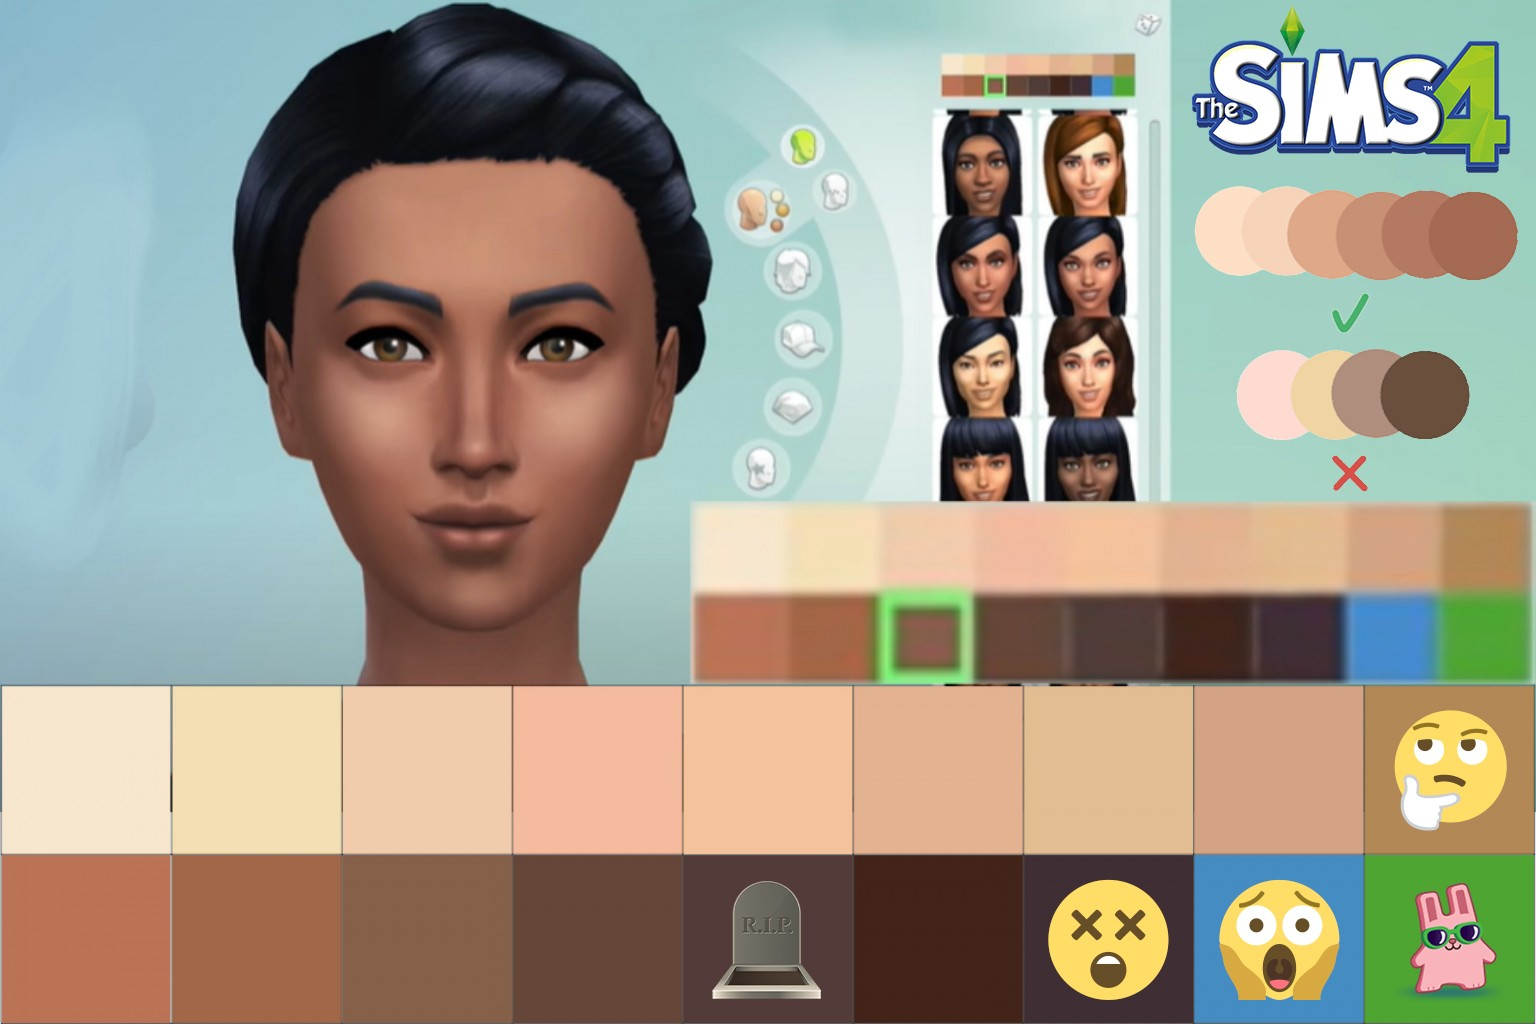 The Sims 4 Skin Tone Updates [October & December 2020] - The Sim Architect